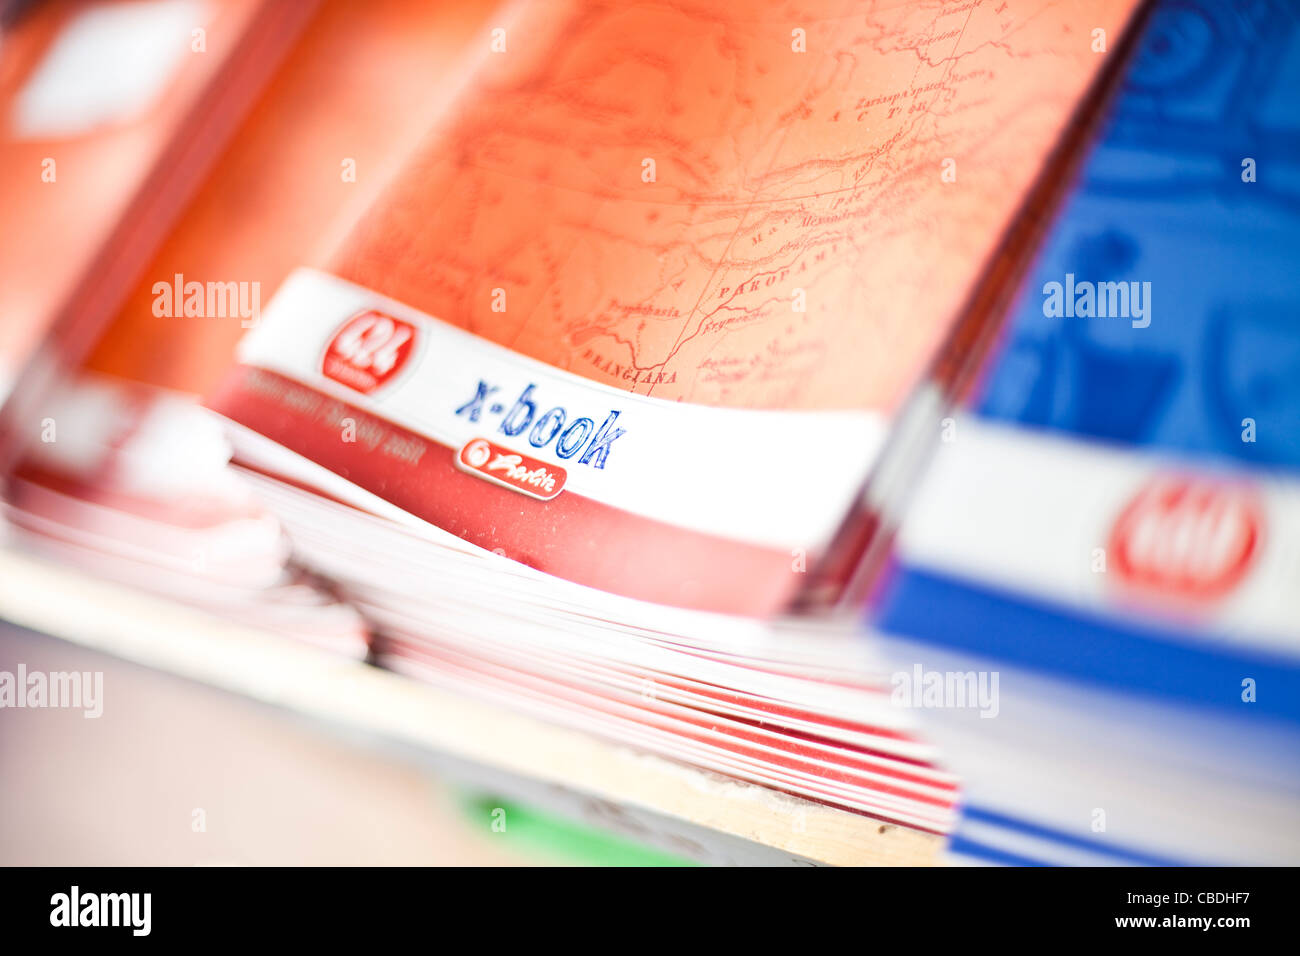 exercise book, notebook, school, office. - Stock Image